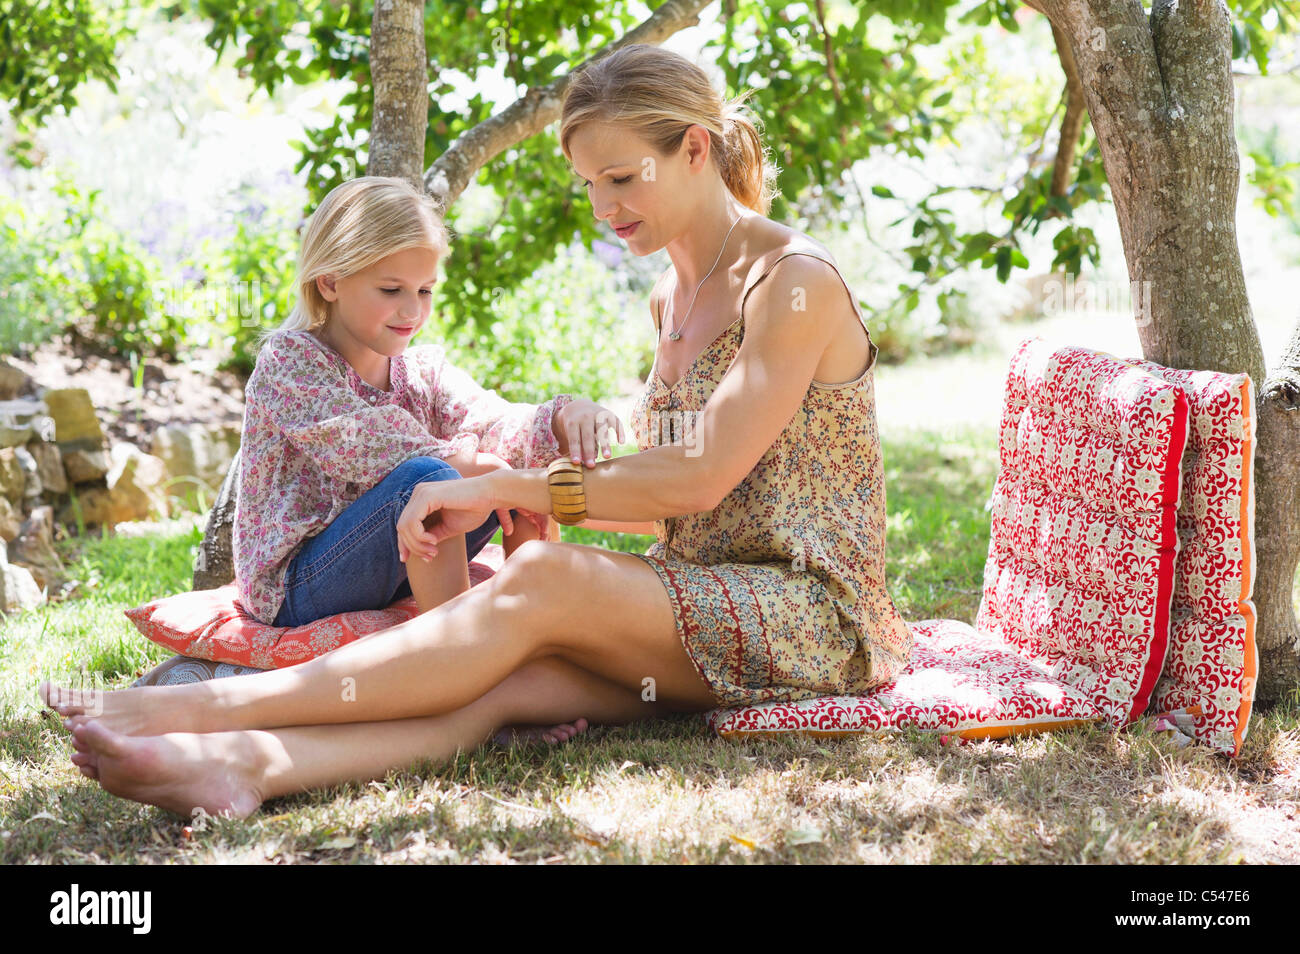 Side profile of mother and a little girl at front or back yard - Stock Image